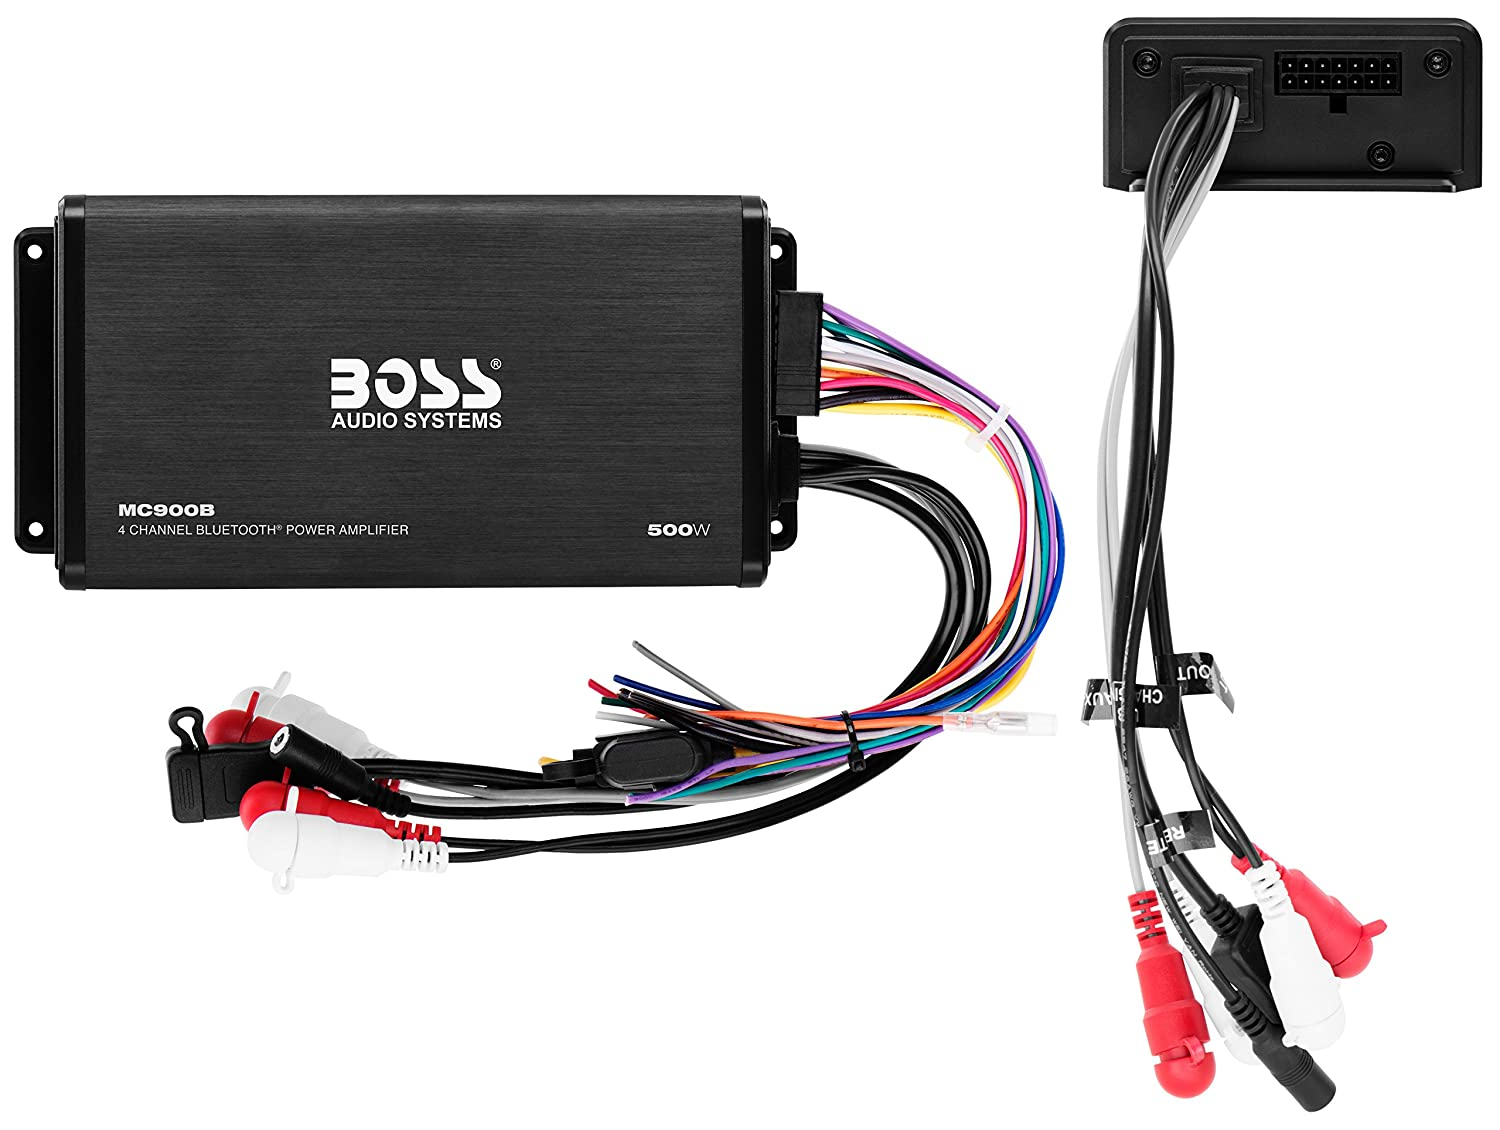 Boss Audio Ask902b6 Marine 500 Watt 4 Channel Amplifier 65 Inch Speaker Bluetooth System Remote Usb Auxiliary Interface Mount